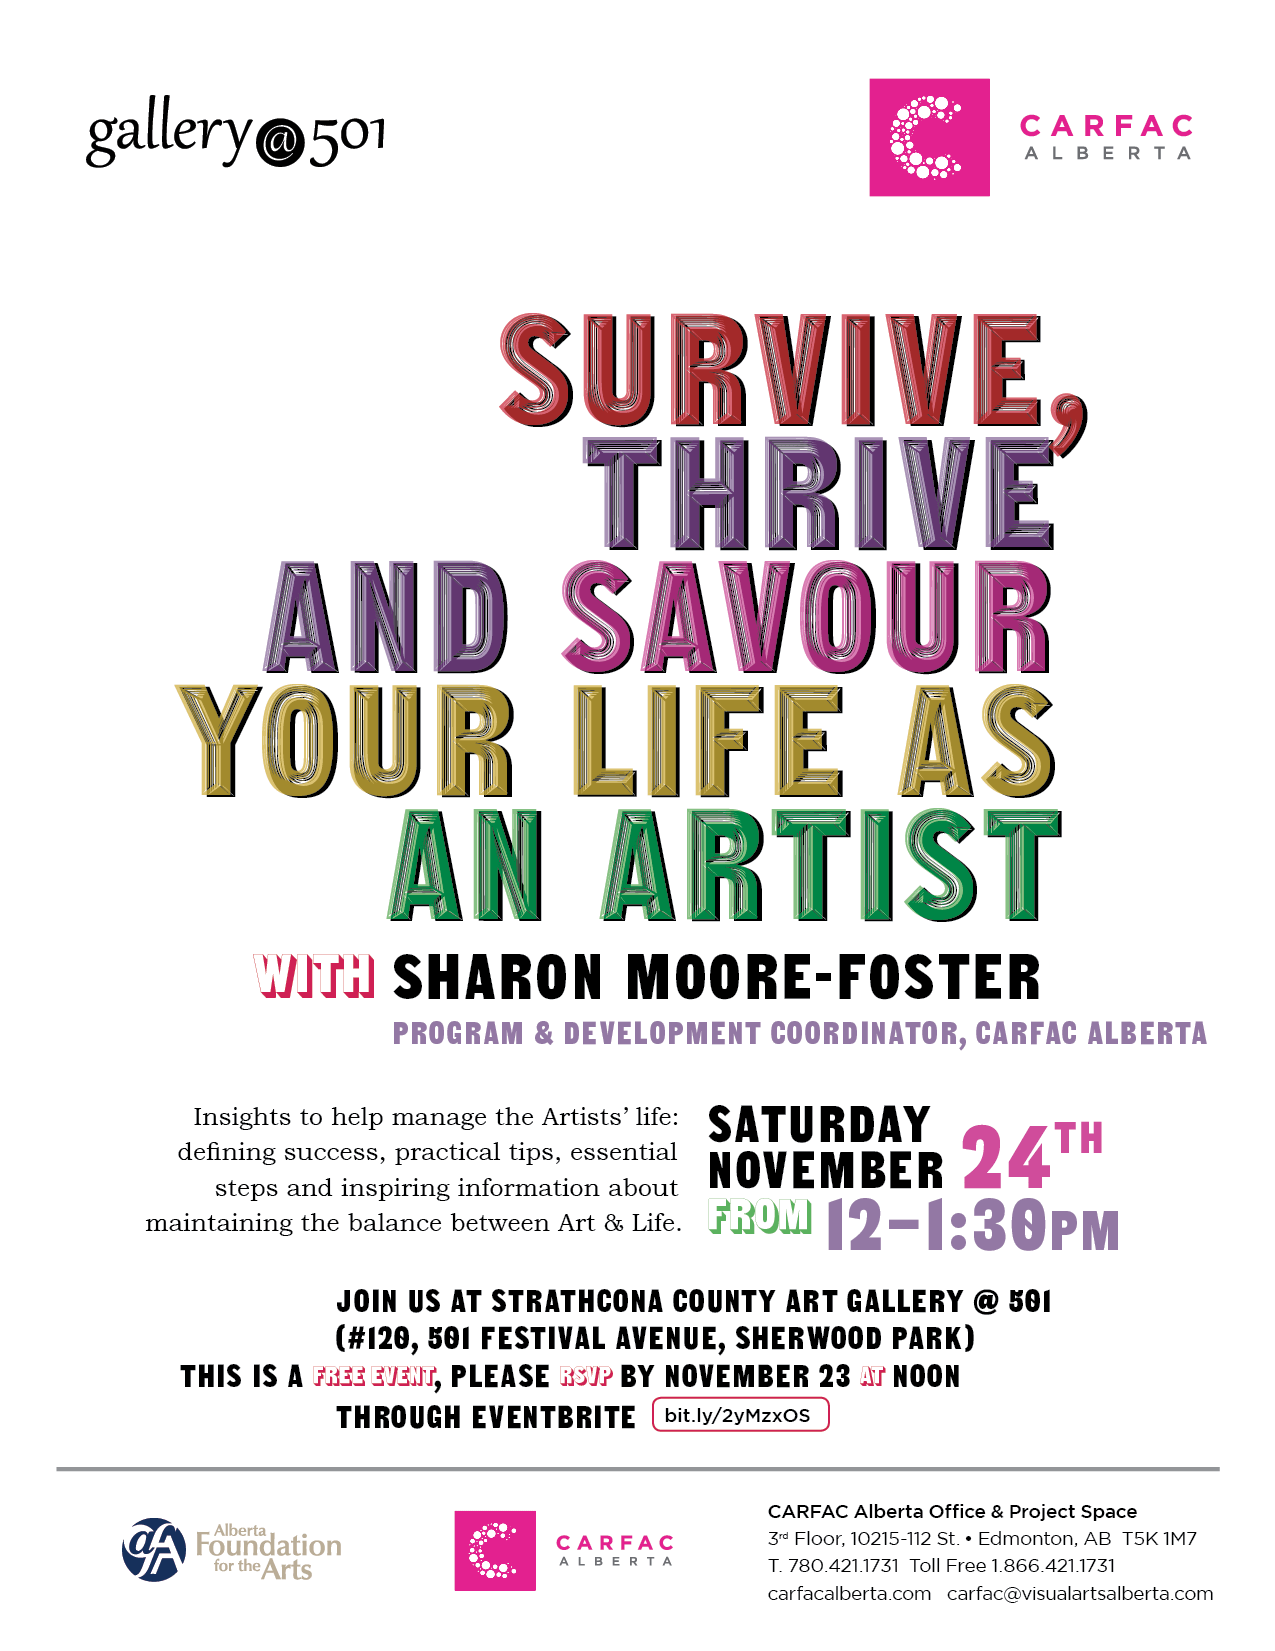 Poster for Survive, Thrive and Savour Your Life as an Artist with Sharon Moore-Foster